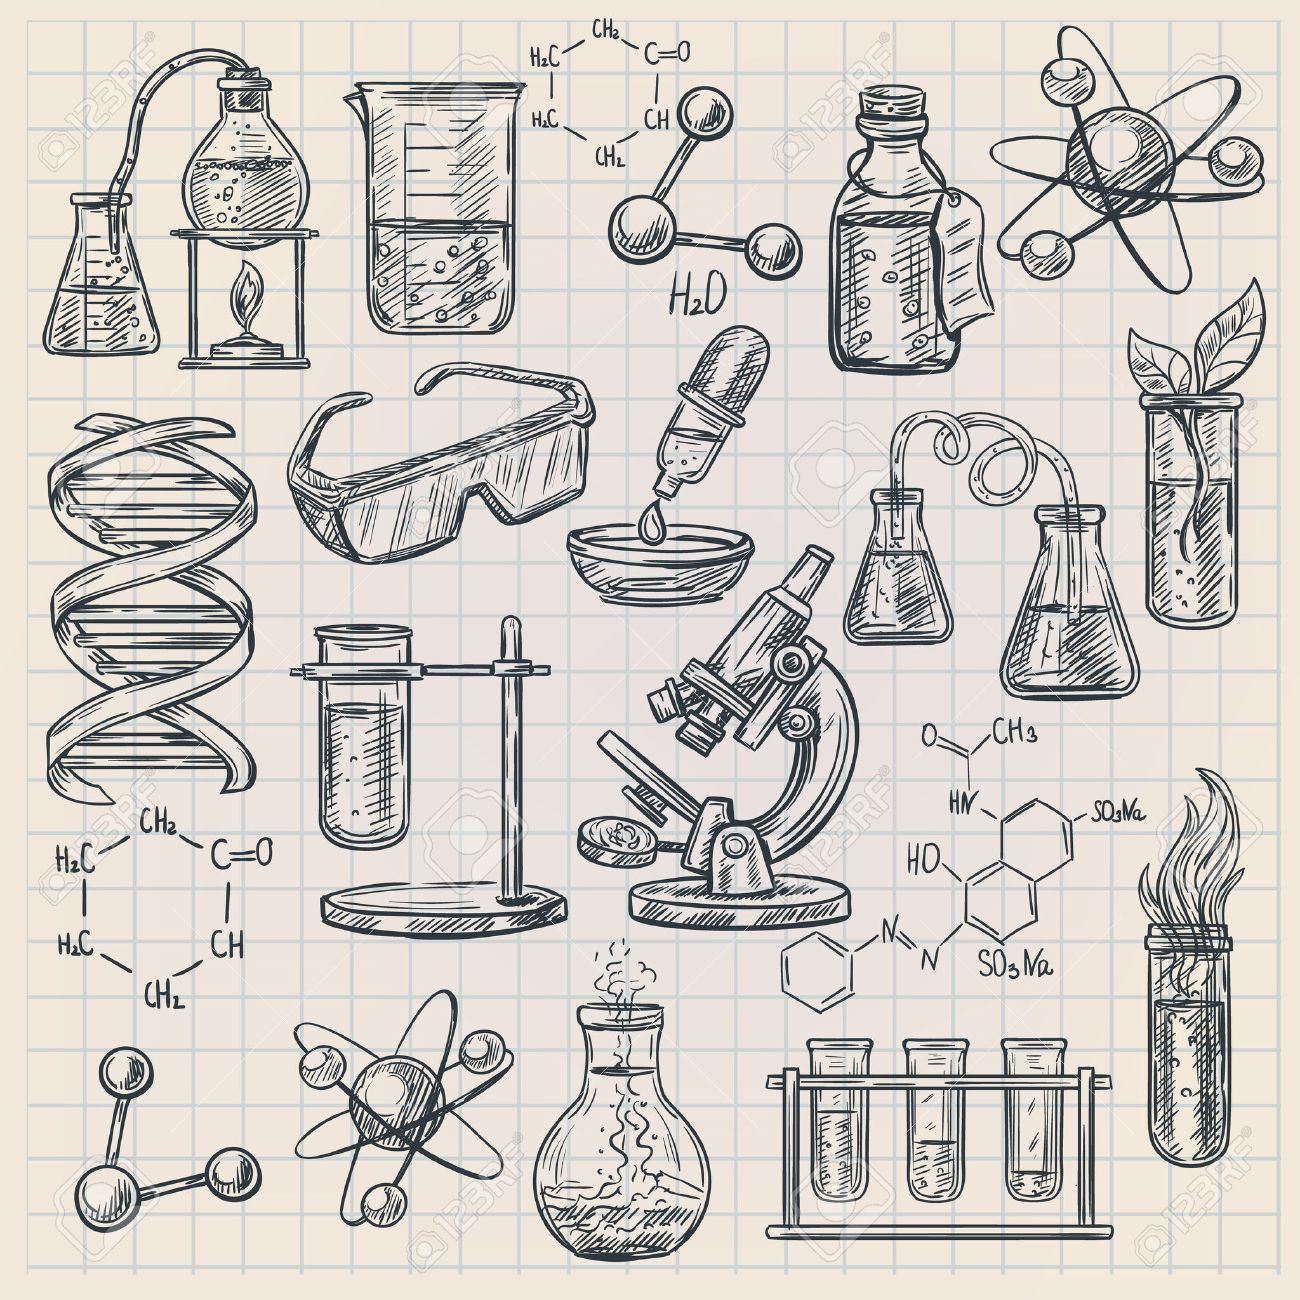 Chemistry icon in doodle style with burner flask dna structure and formulas of organic substances isolated vector illustration - 49541067